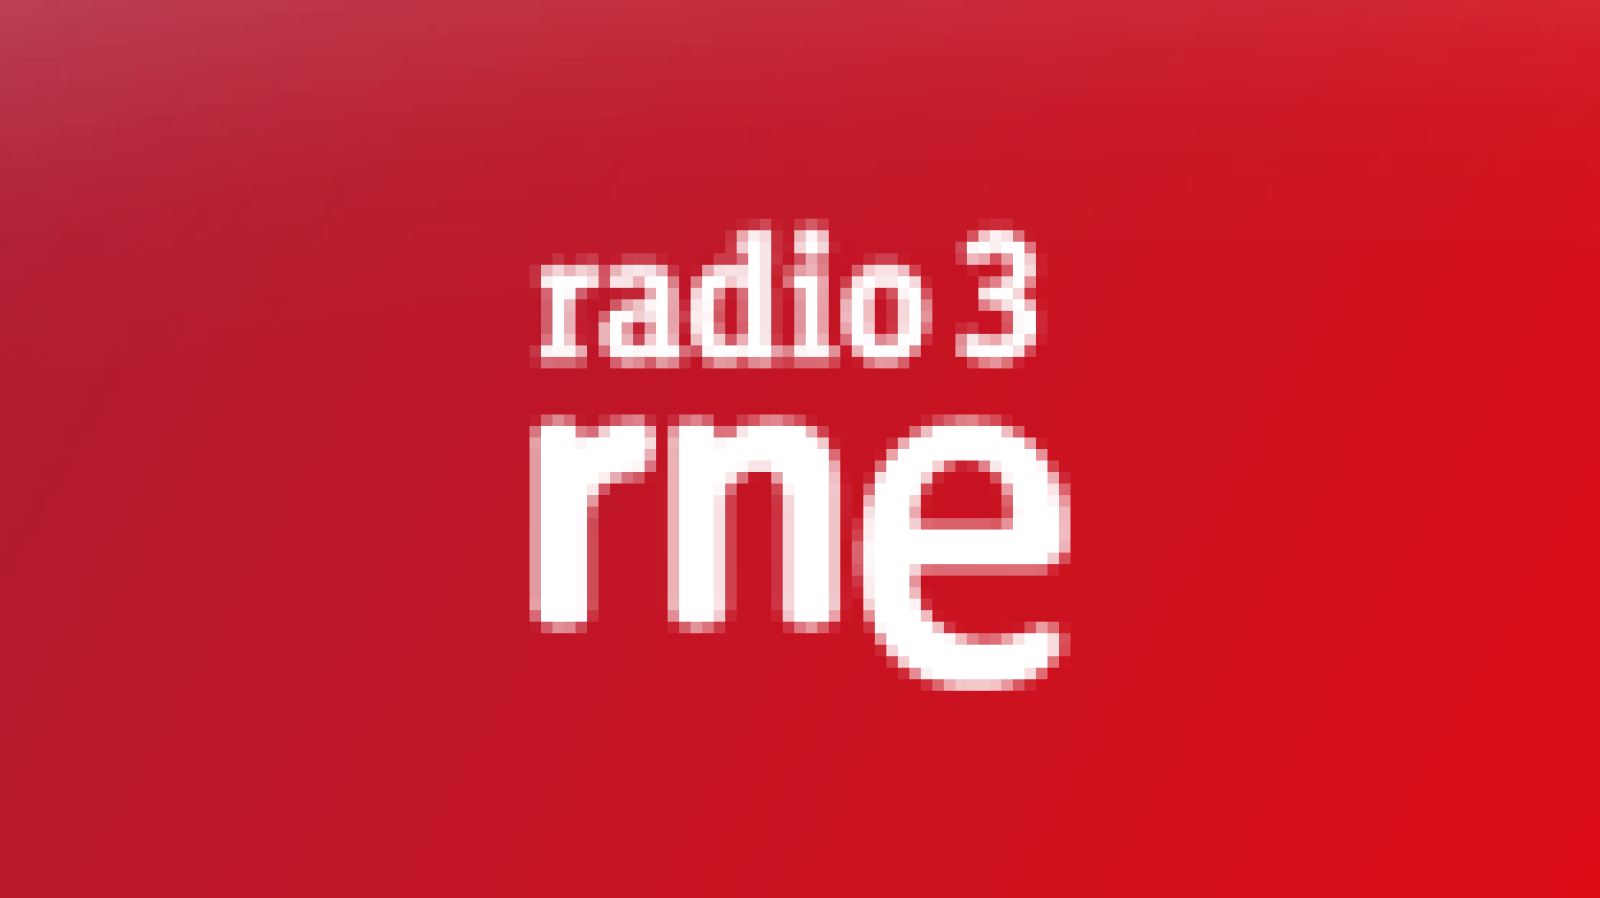 Carne cruda - Atlantic Records, maximum rythm & blues - 30/08/12 - escuchar ahora